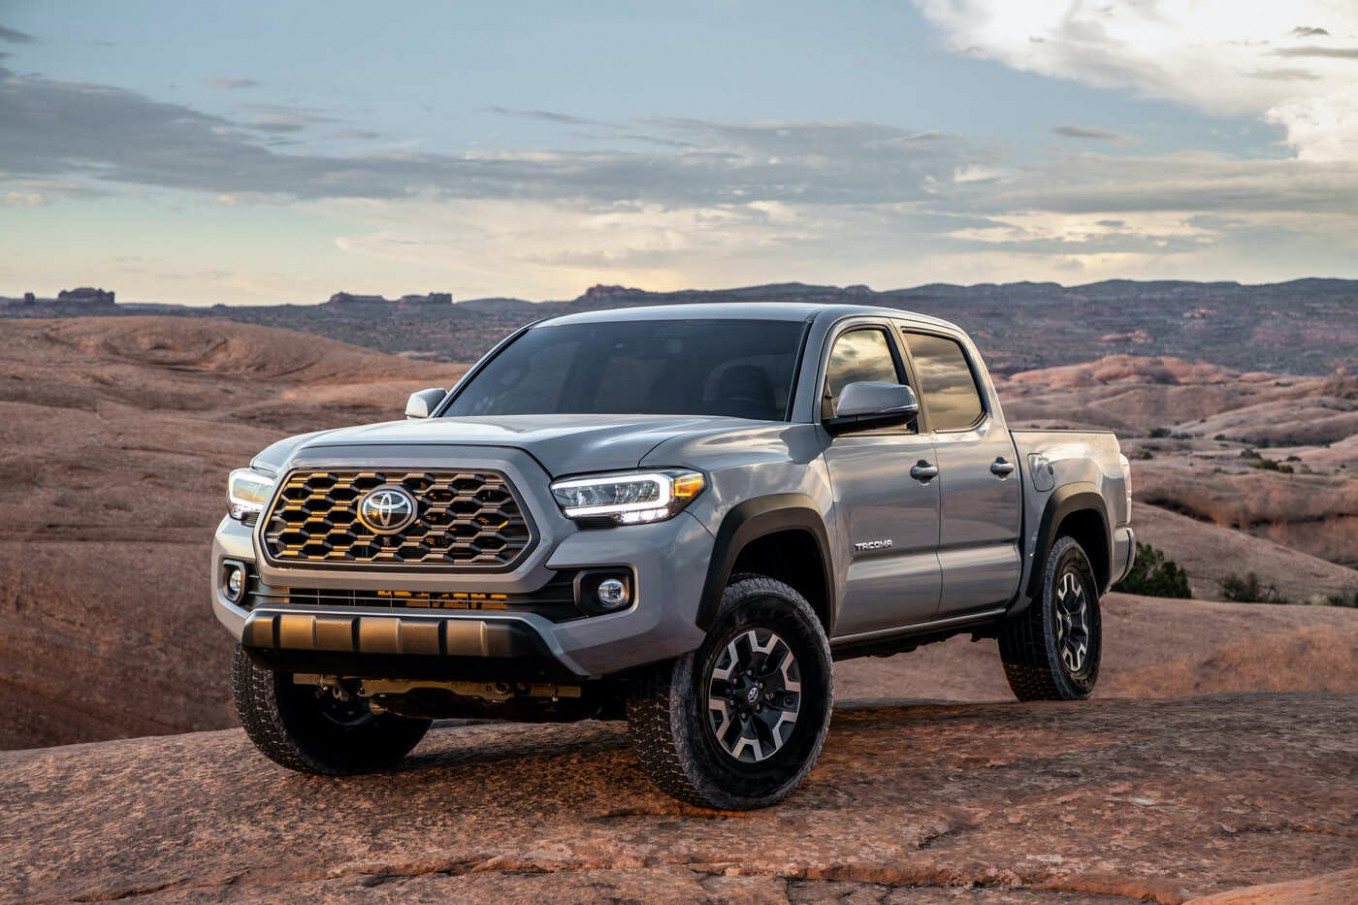 9 Toyota Tacoma Reviews, Pricing & Pictures | TrueCar